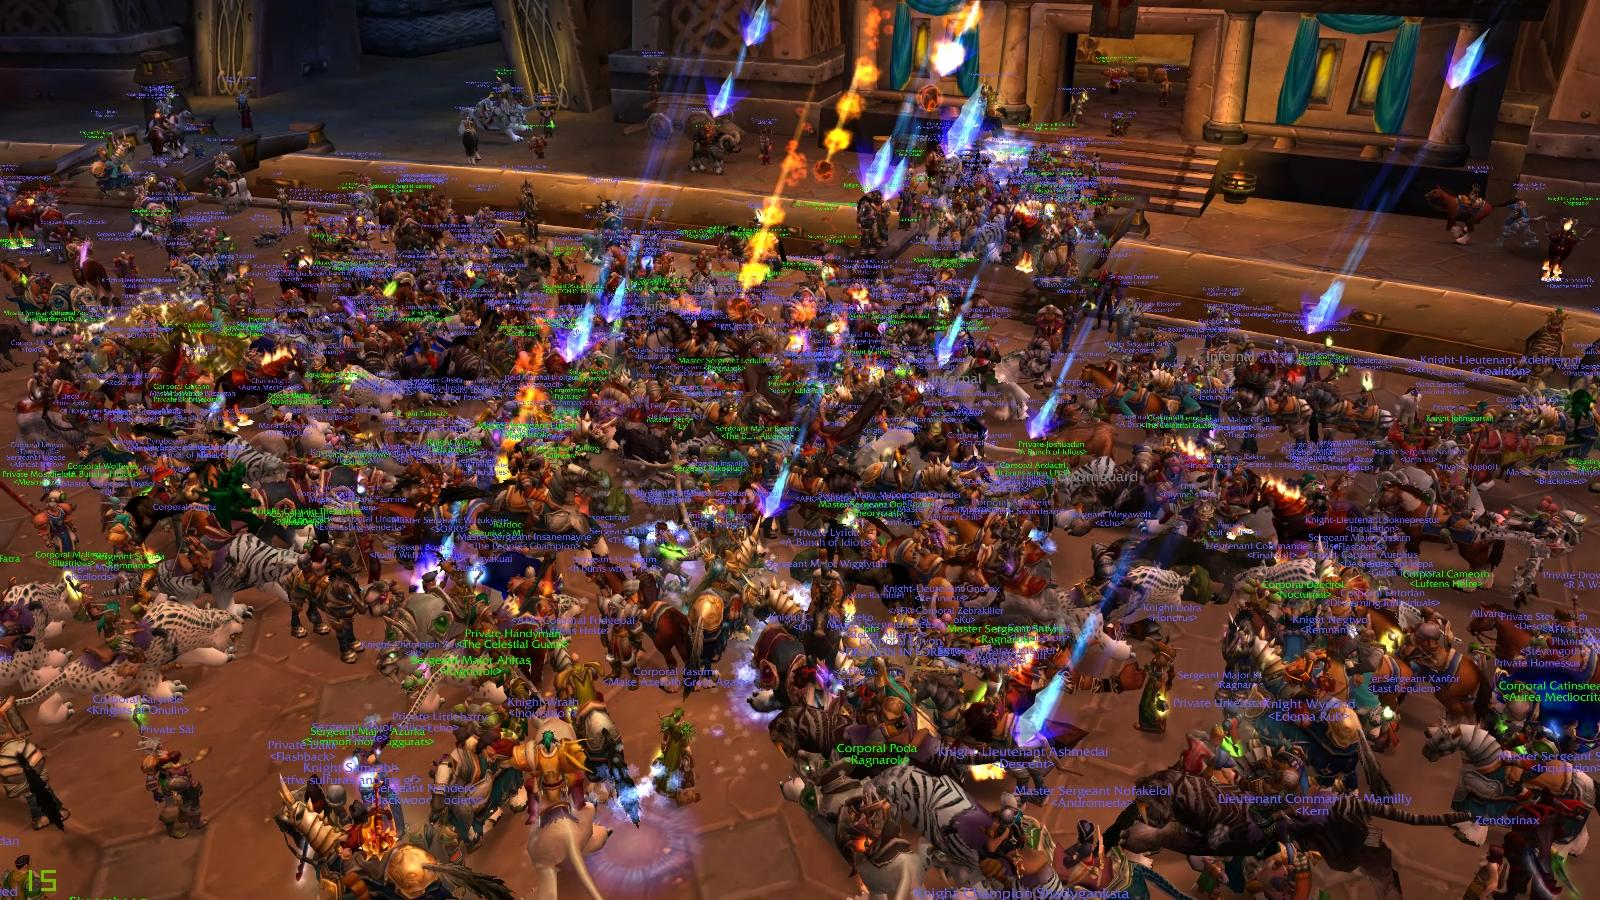 World of Warcraft Nostalrius Servers Reopen On December 17th